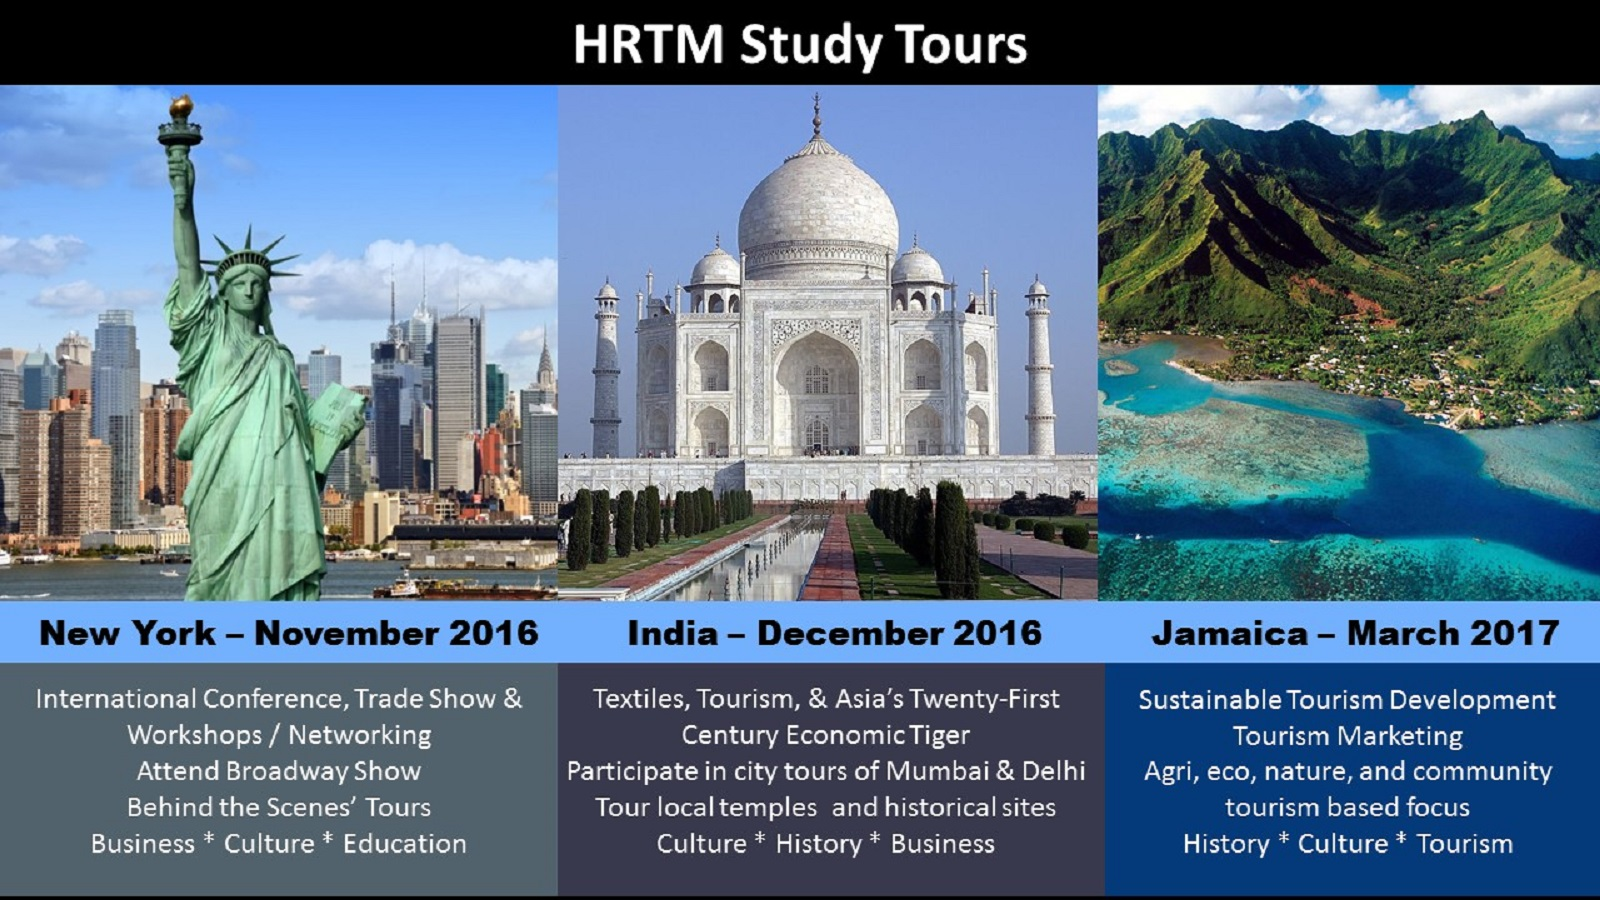 hospitality restaurant tourism management college of upcoming hrtm study tours